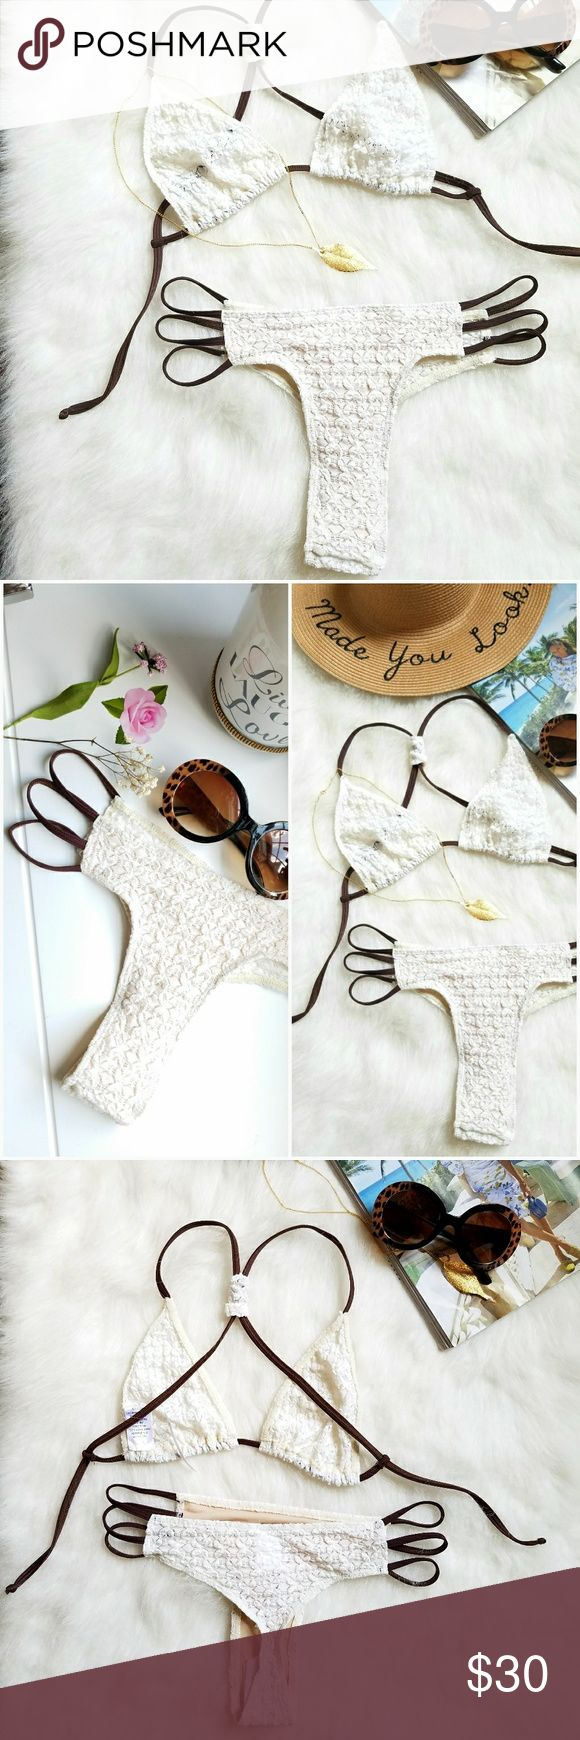 🌞👙Hottt Teeny Weeny Bikini👙🌞 NWT☆Two-Piece bikini set.  Pretty cream color with brown stretchy straps.  Material is a lacy fabric.  Sexy three strap hip design.  This is a revealing yet classy number.  If you're not afraid to flaunt it, then you will love this set.  Protective shield still intact.  A size M, but will fit XS-M. Swim Bikinis